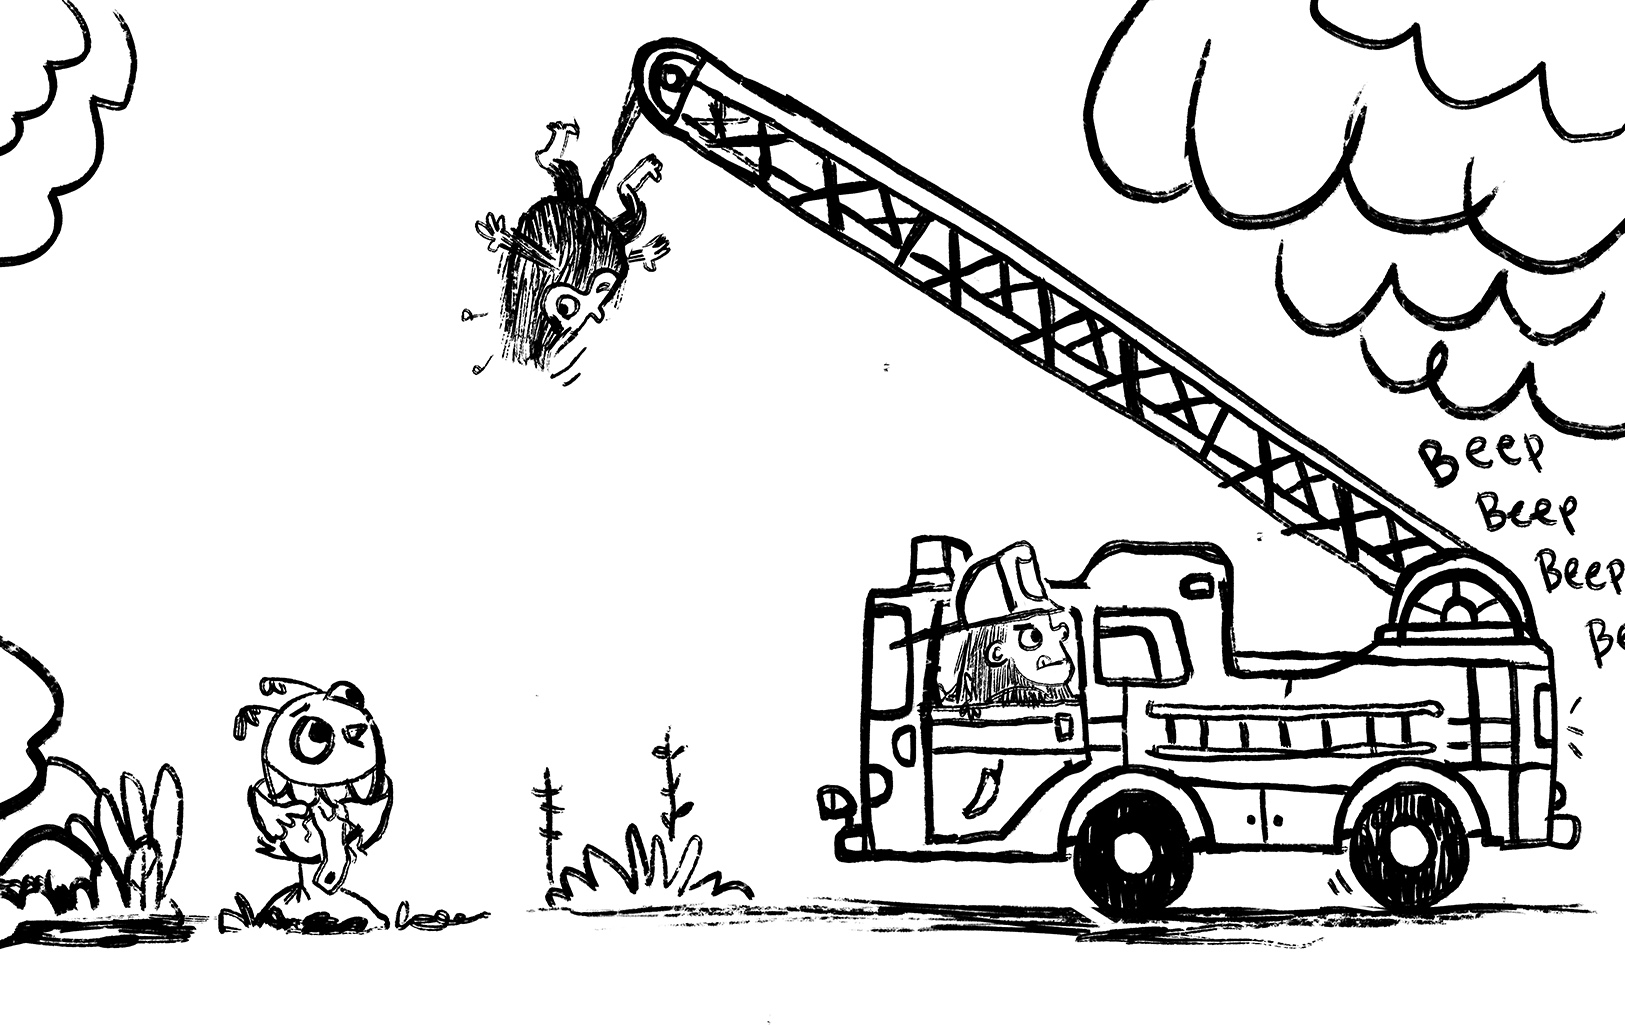 I like how I've got multiple points of narrative in one drawing across a spread. Monkey responds to Owl on the left as he hangs from the ladder and then on the right he's pulling the firetruck away as a second post of action.